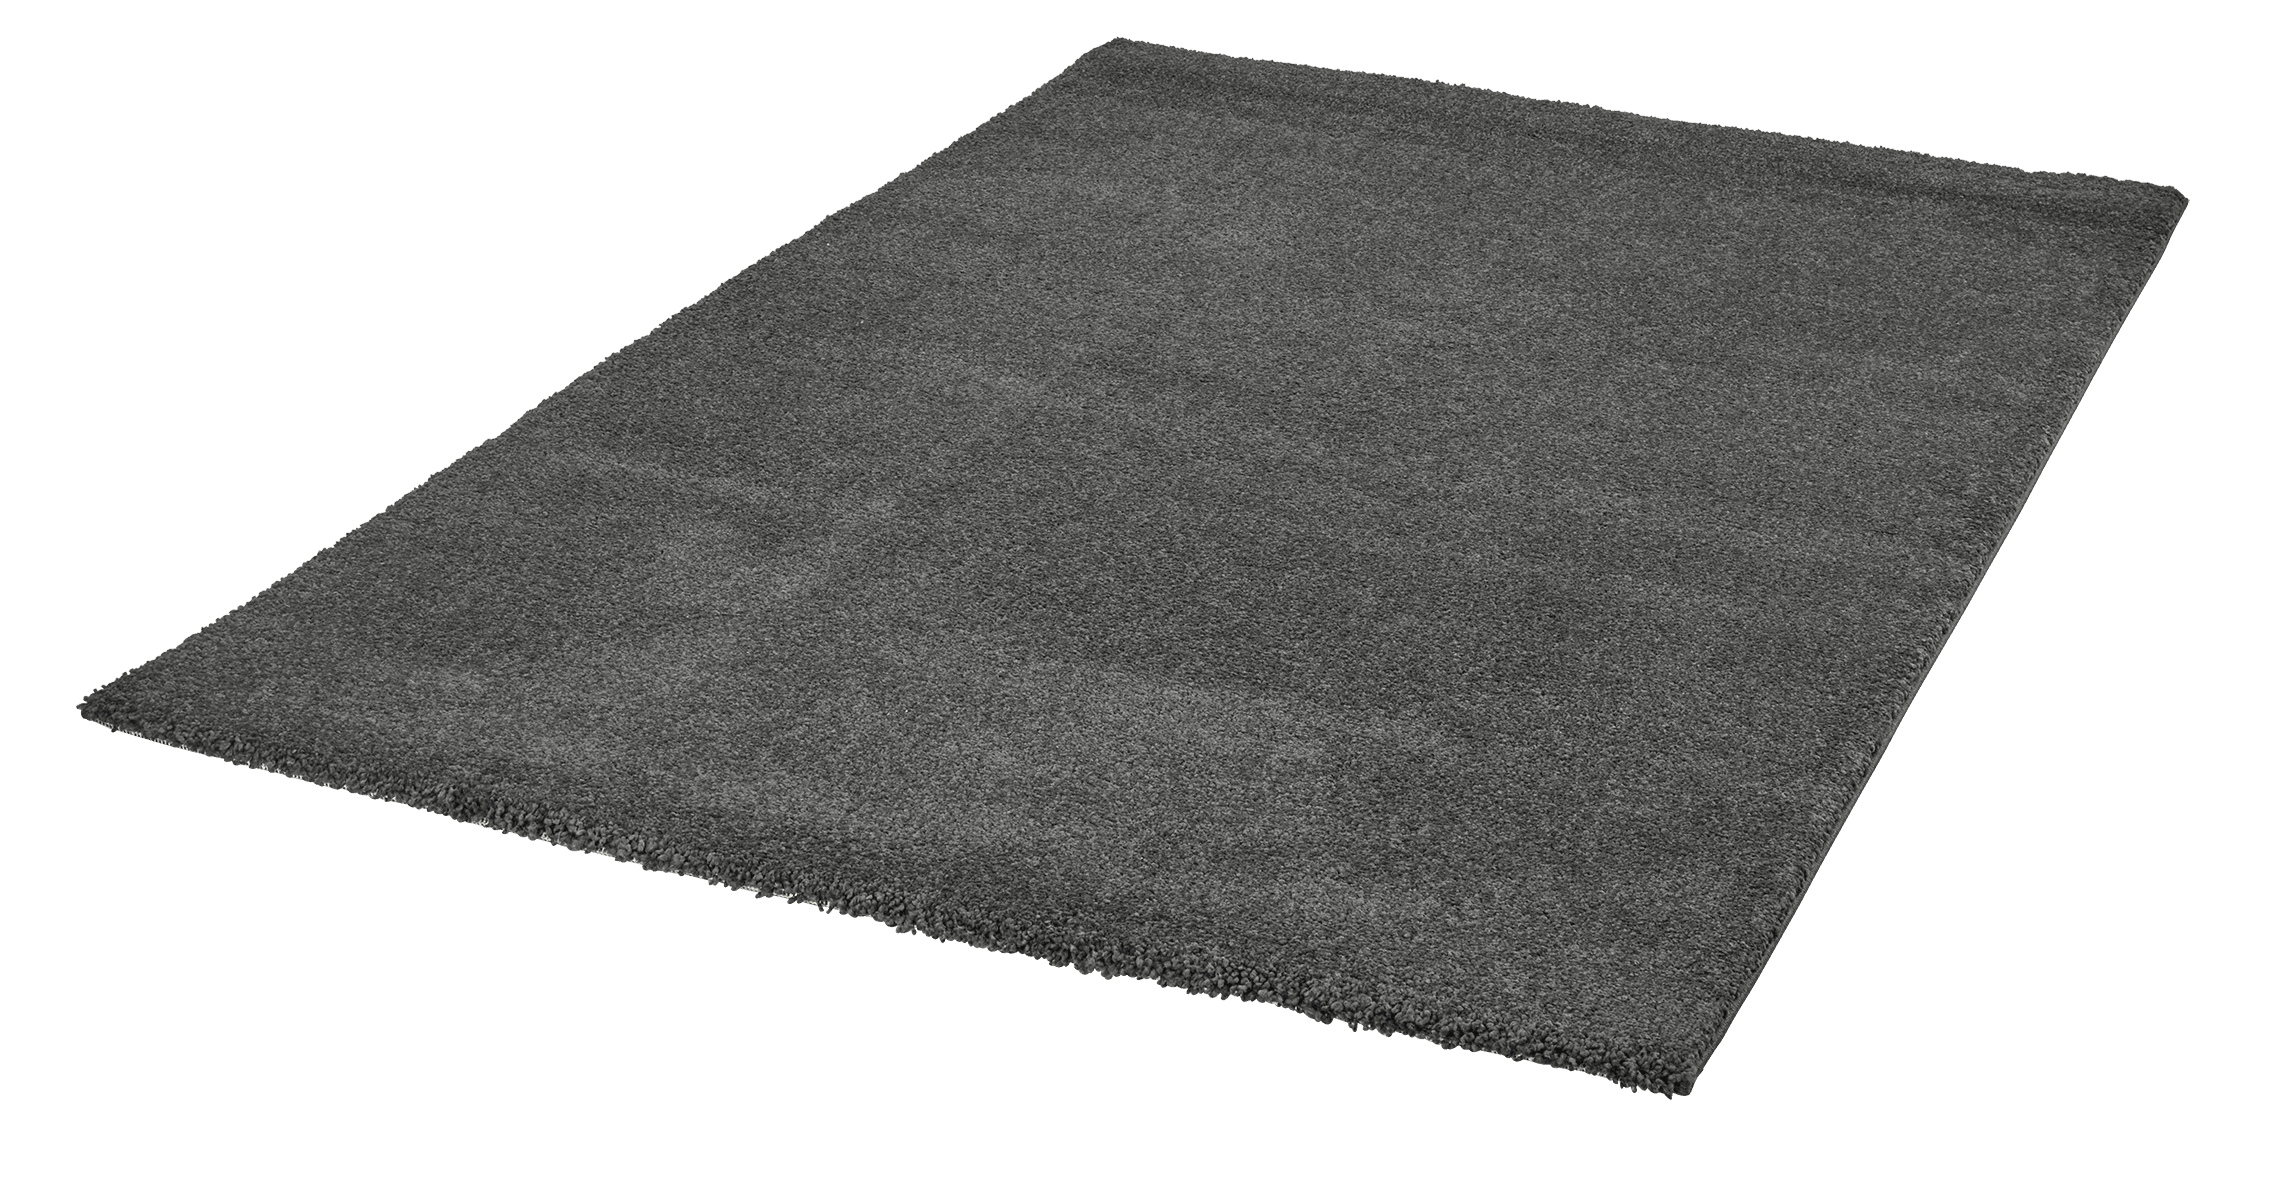 Vloerkleed Obsession Soho Anthracite 840 - Omid Carpets